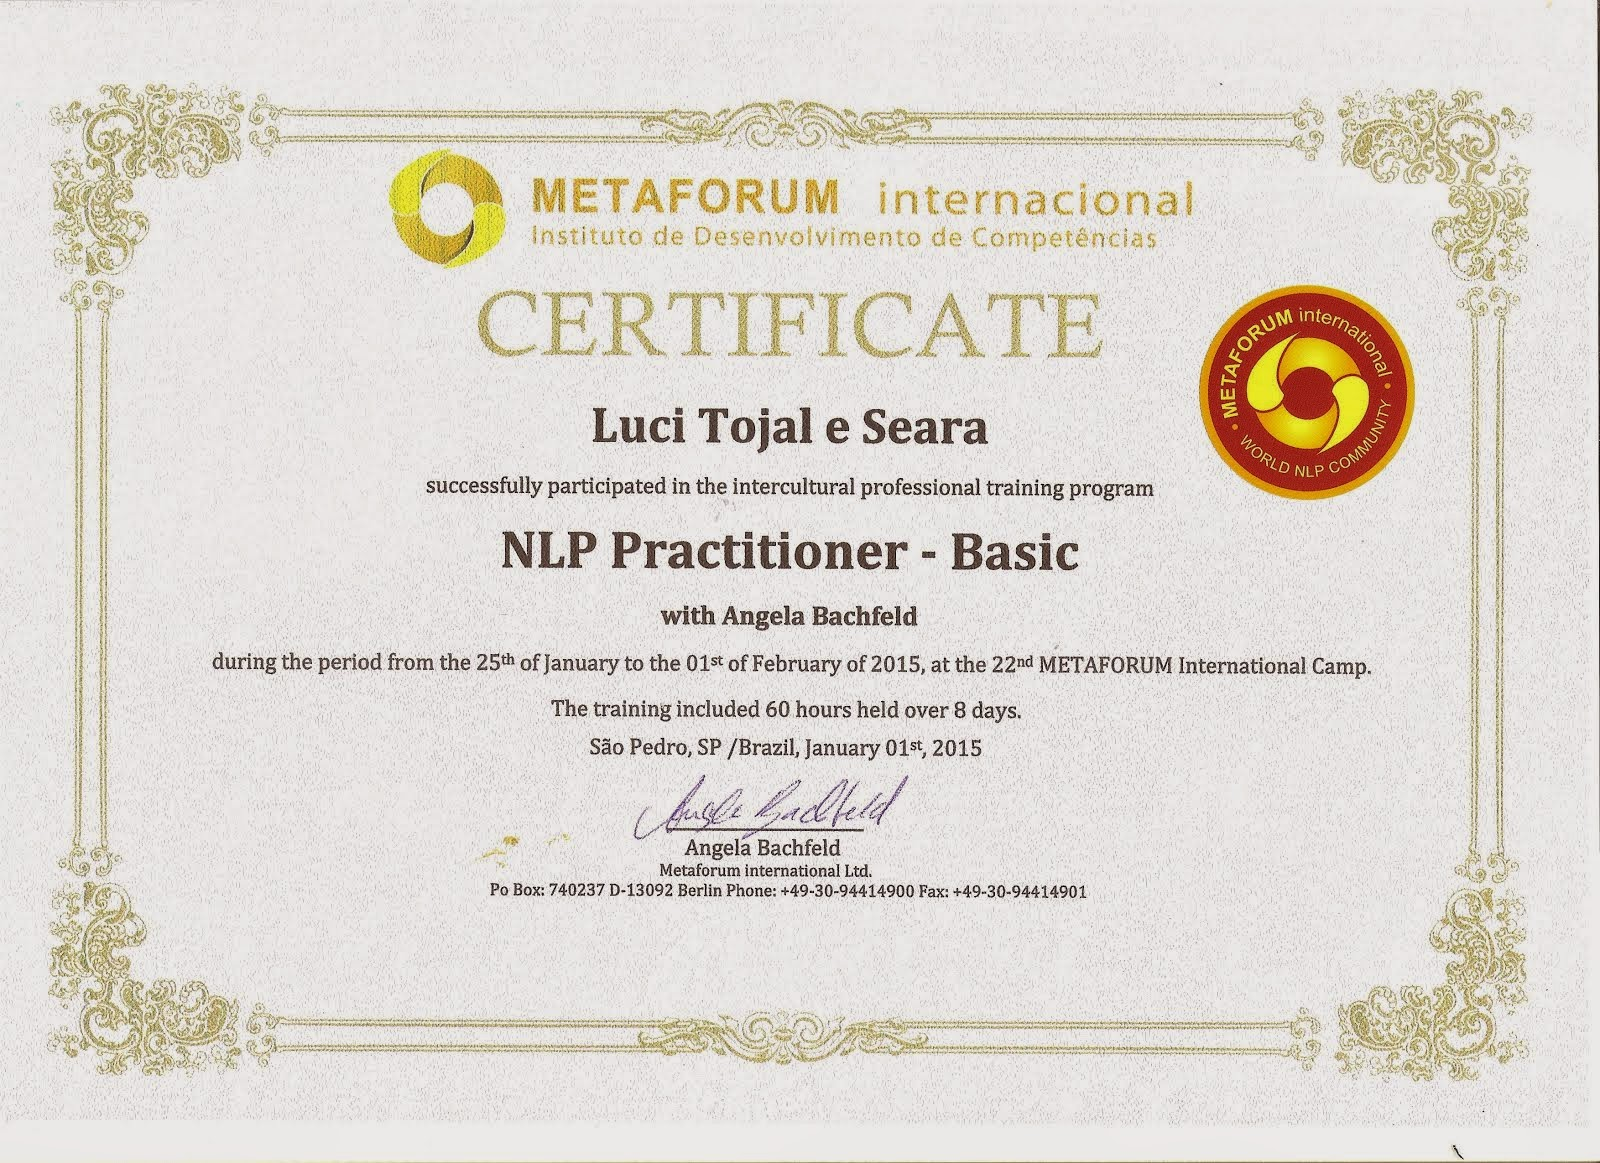 PNL Practitioner - Basic